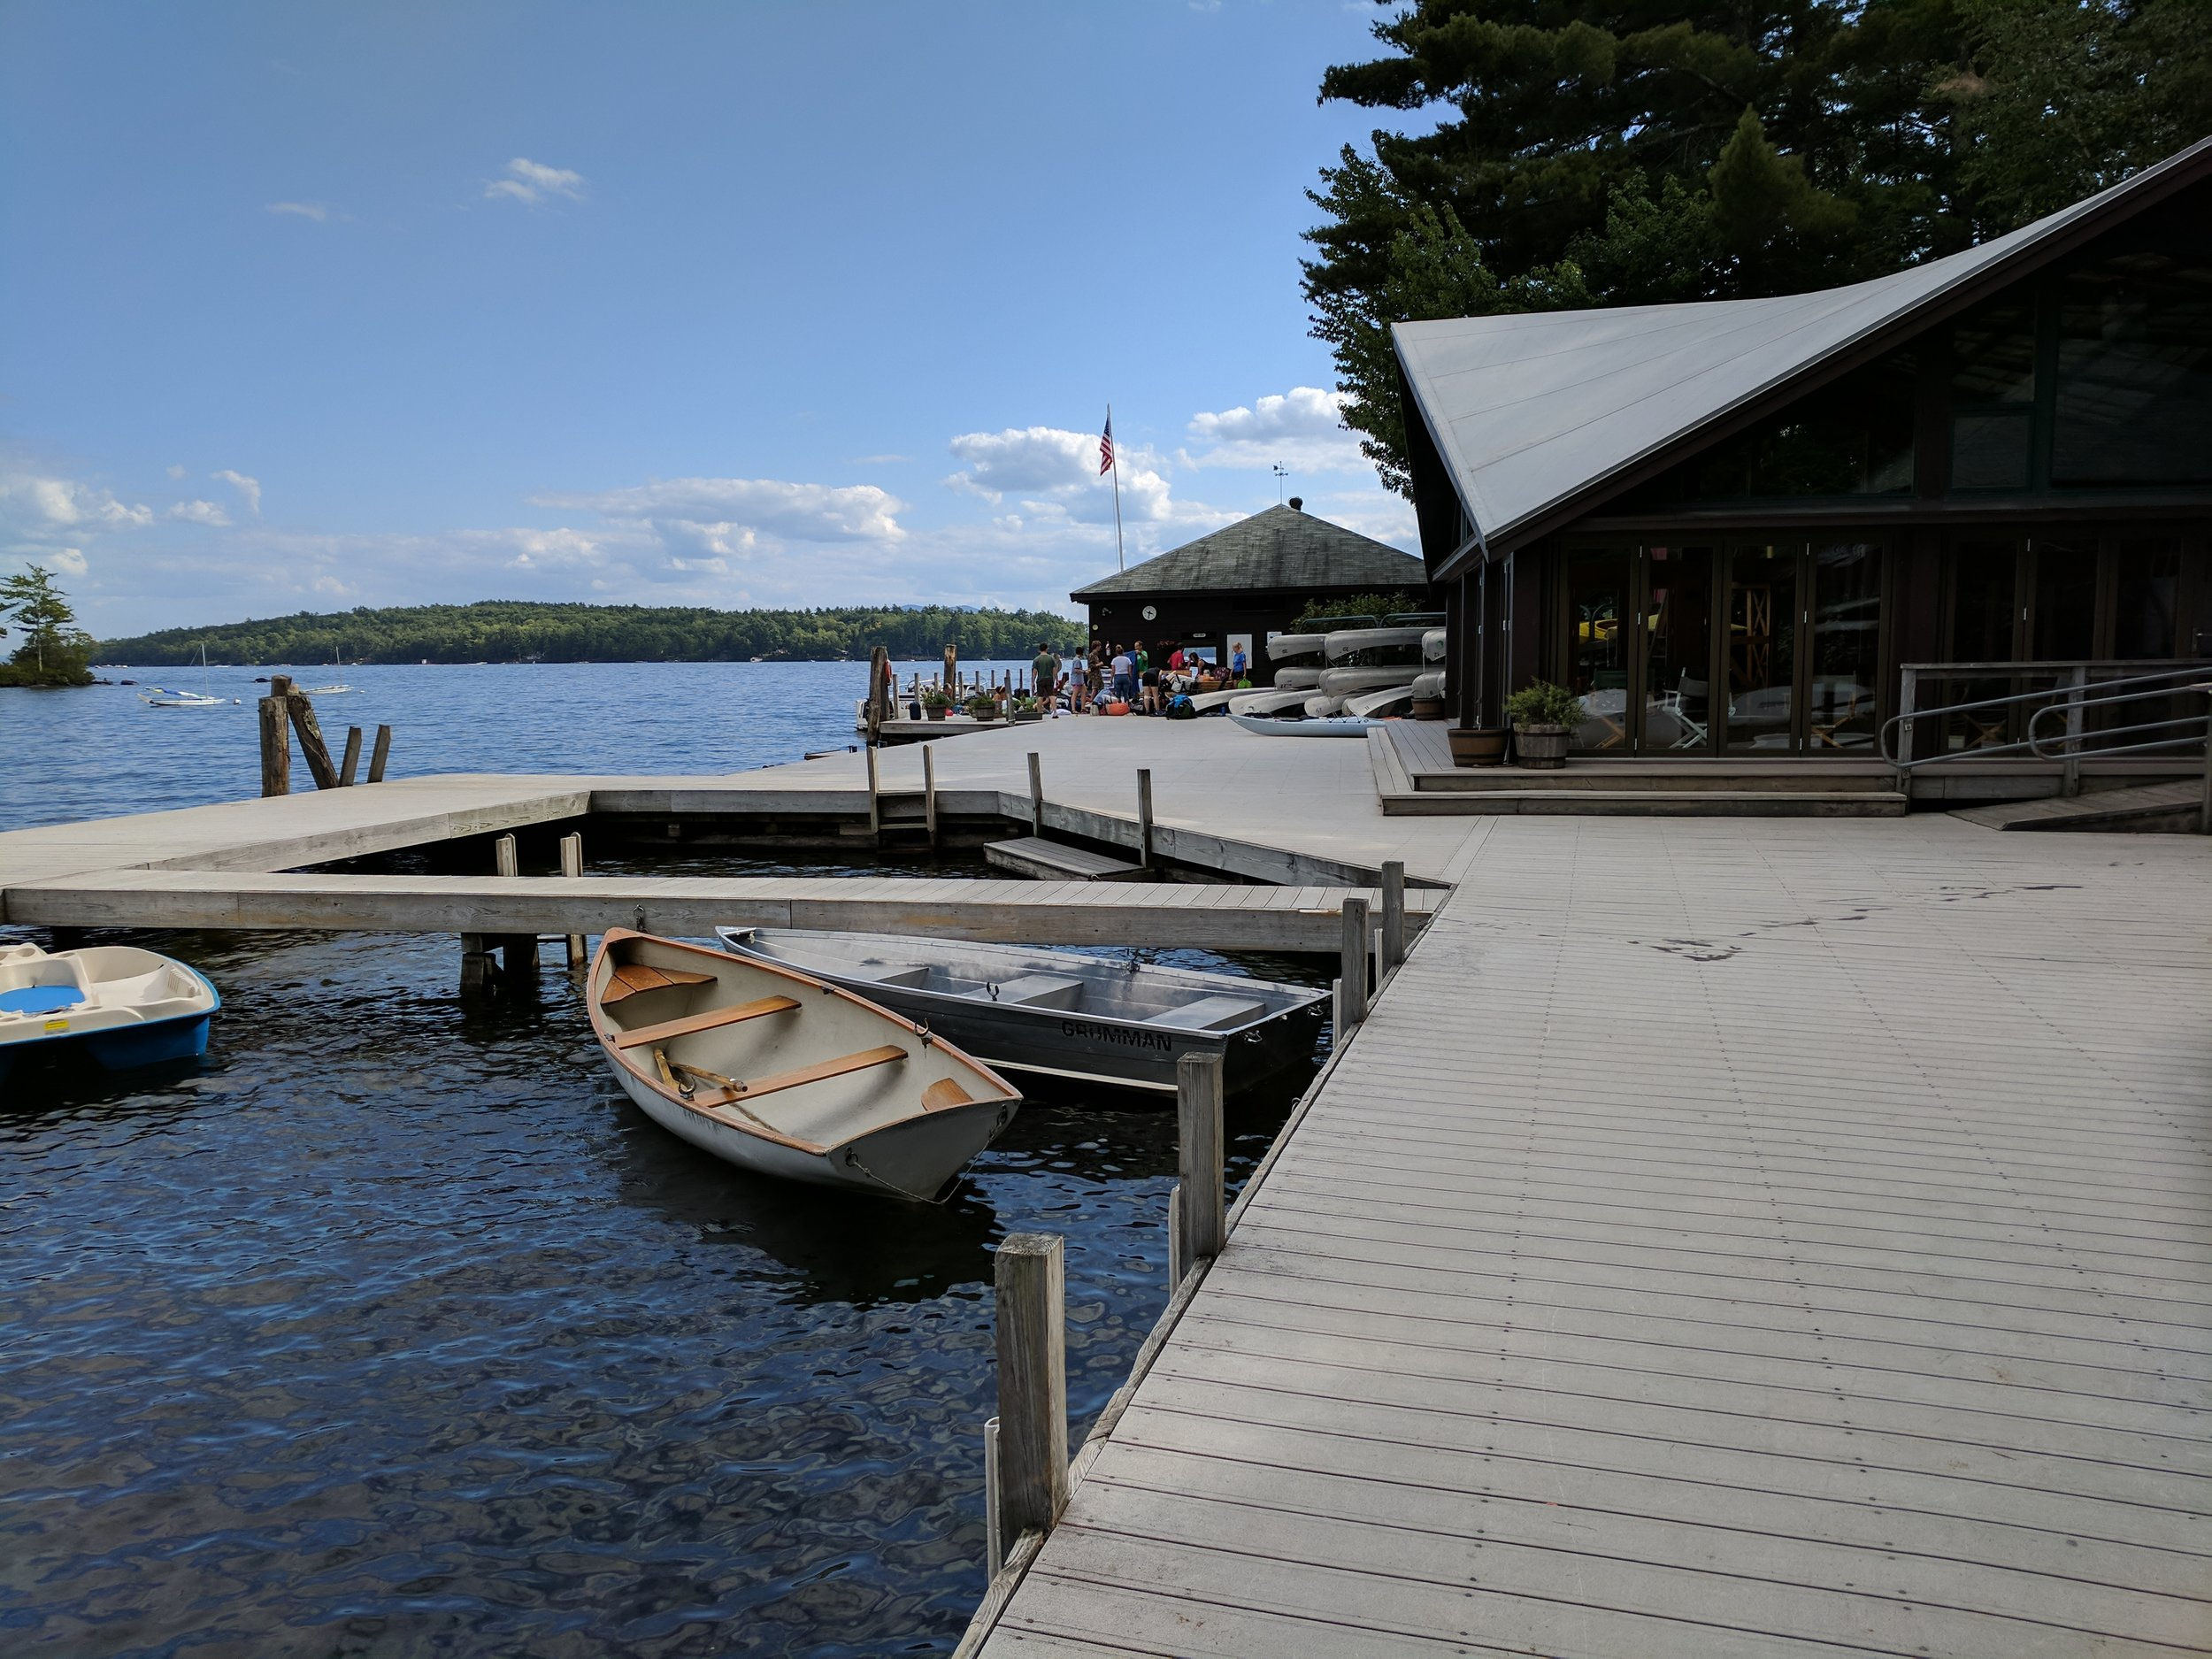 The Main Dock - A large recreation hall faces the main dock. Many campers congregate there for swimming, reading, ping-pong, board games, and talking with old and new friends. Campers can rent canoes, kayaks, stand-up paddle boards, and sailboats for a nominal weekly fee.